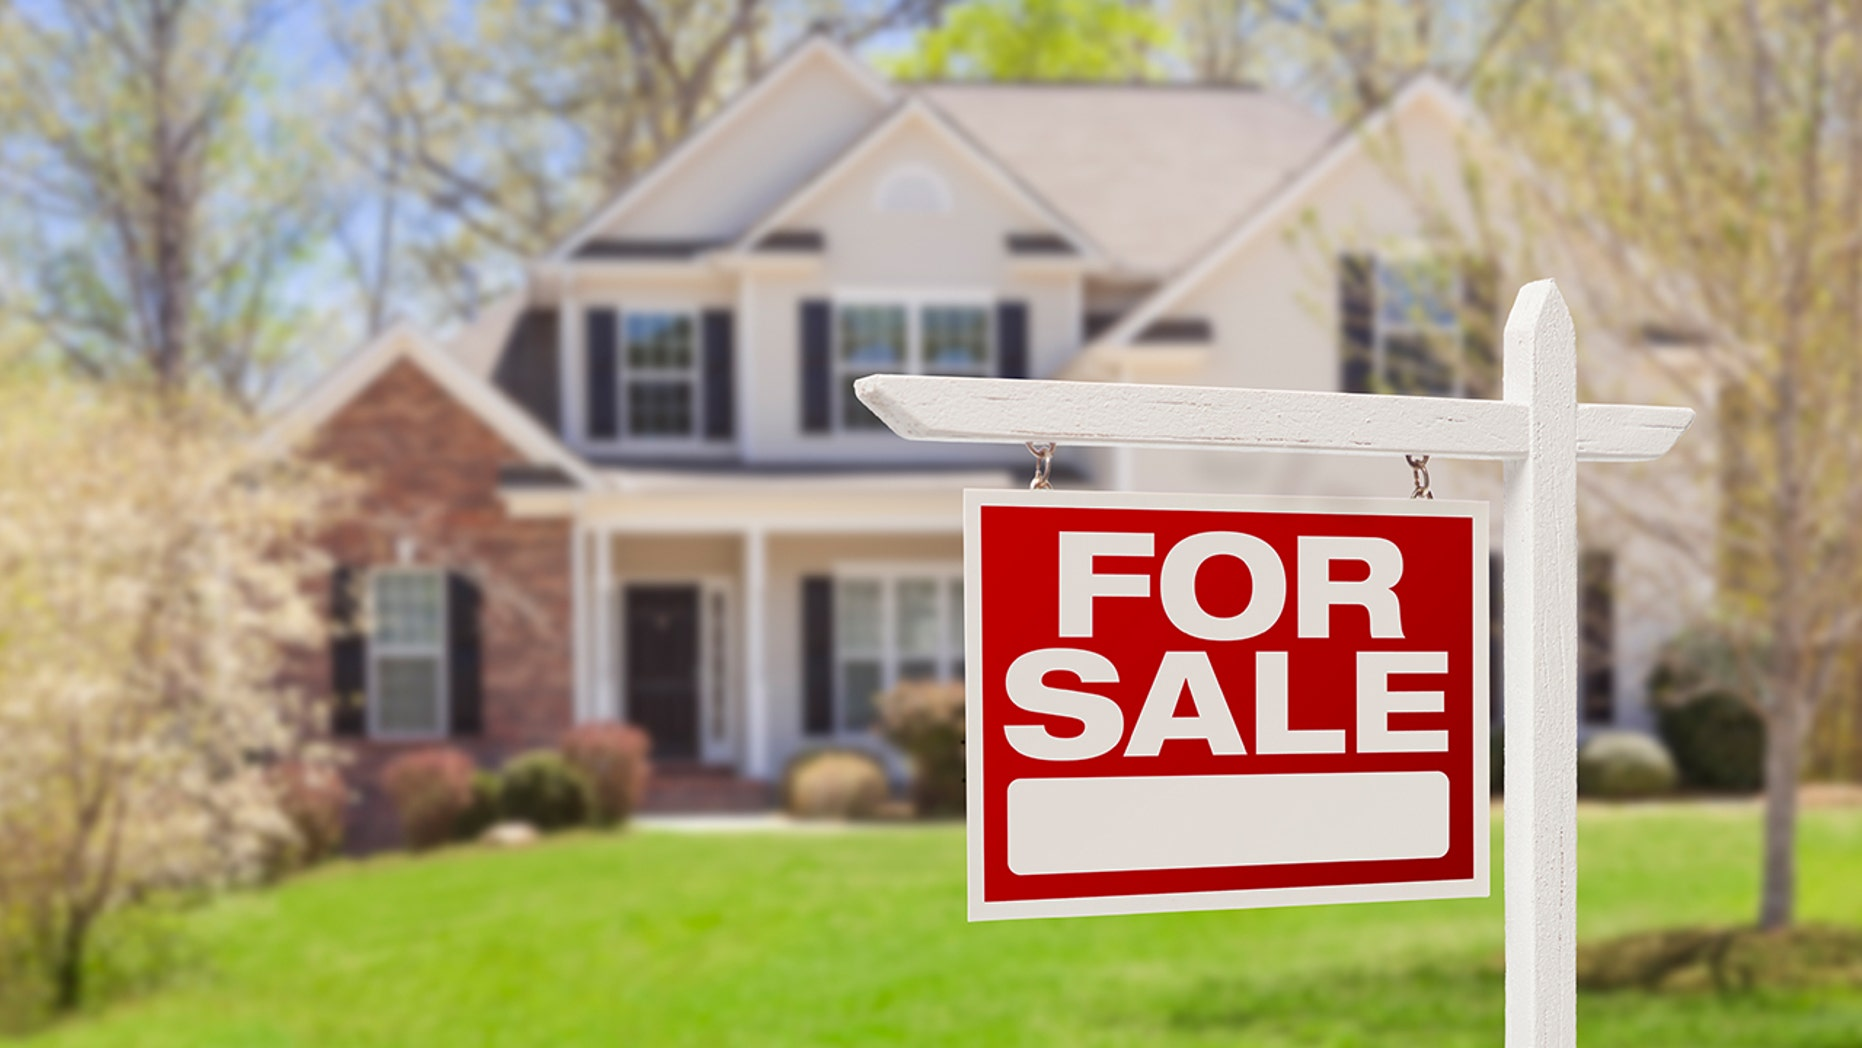 Realtors suggest you tell these white lies in order to sell your home.